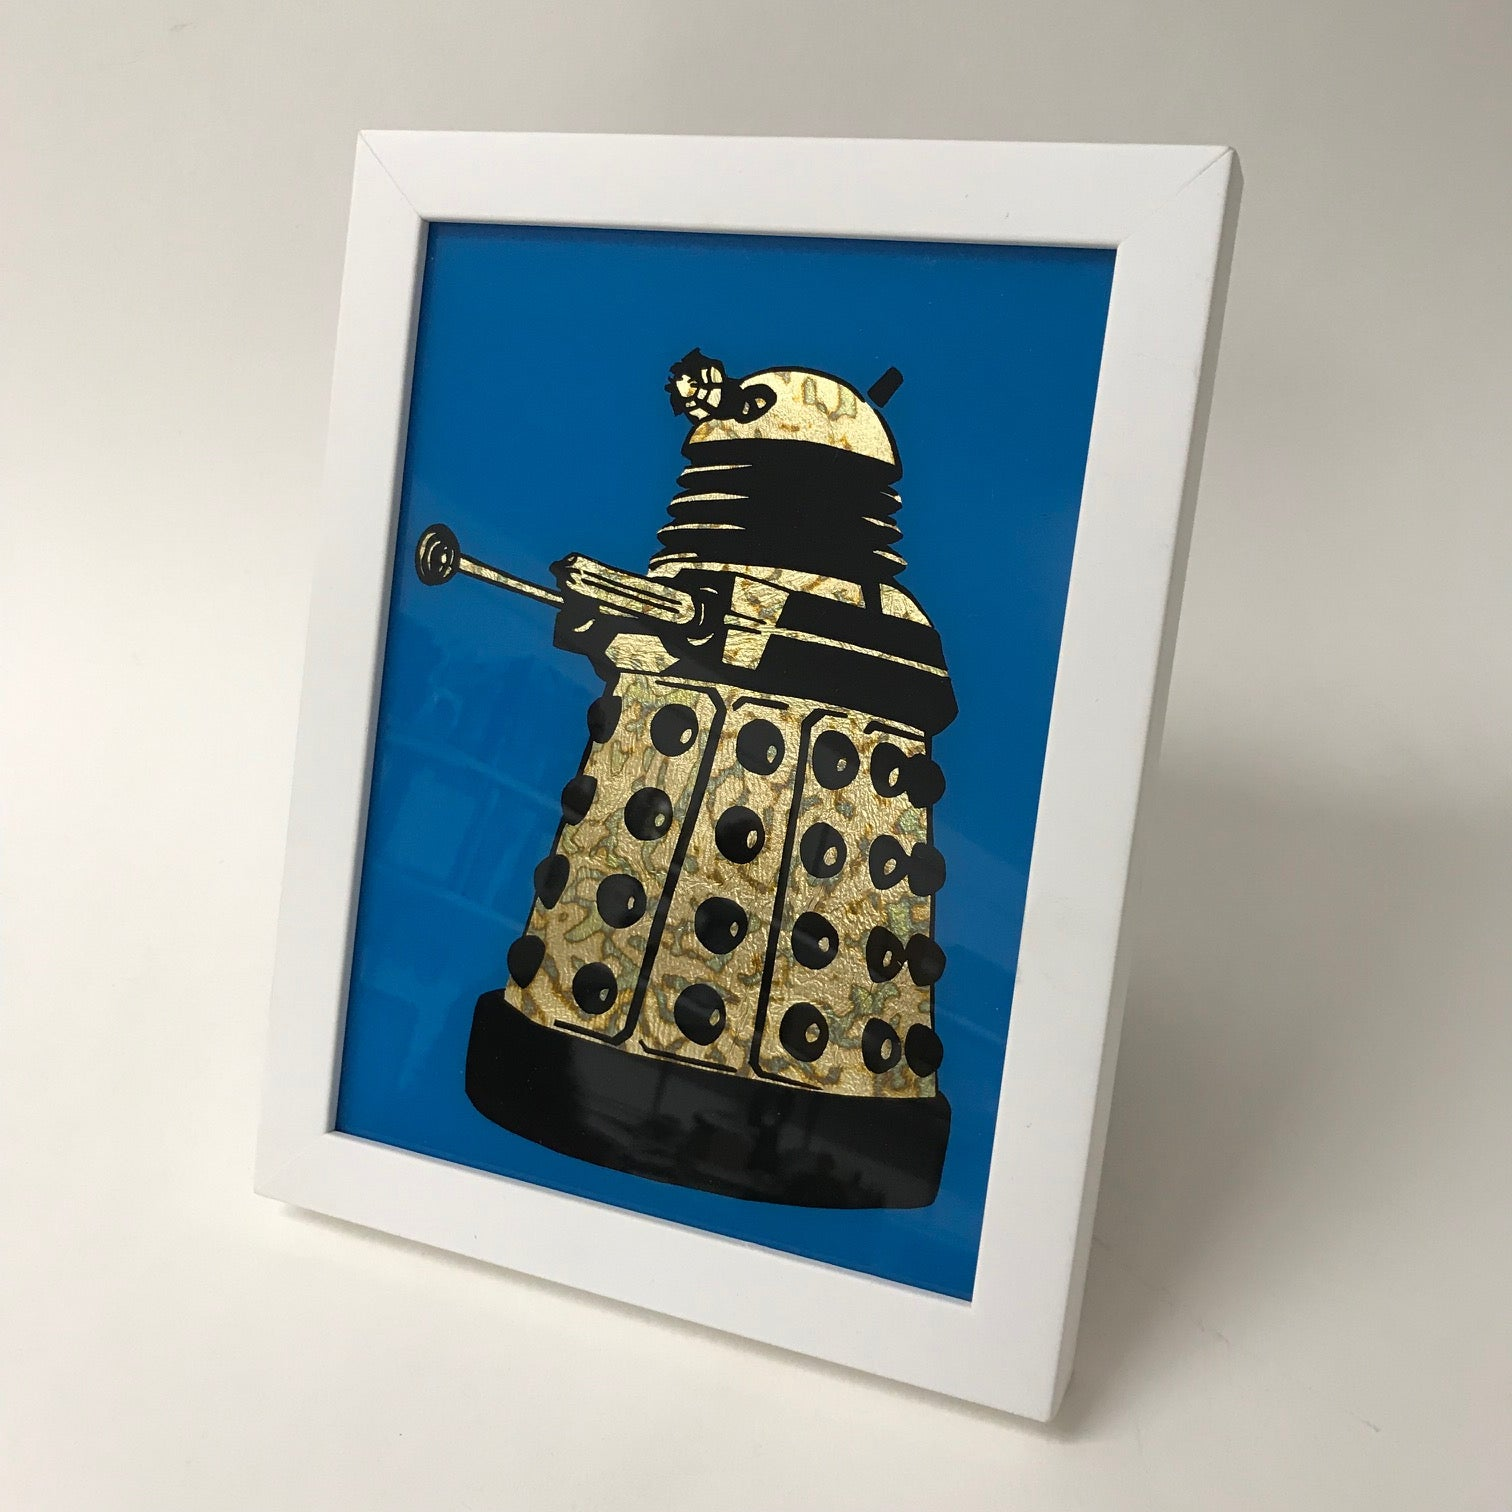 Framed Gilded and Burnished Gold Dalek